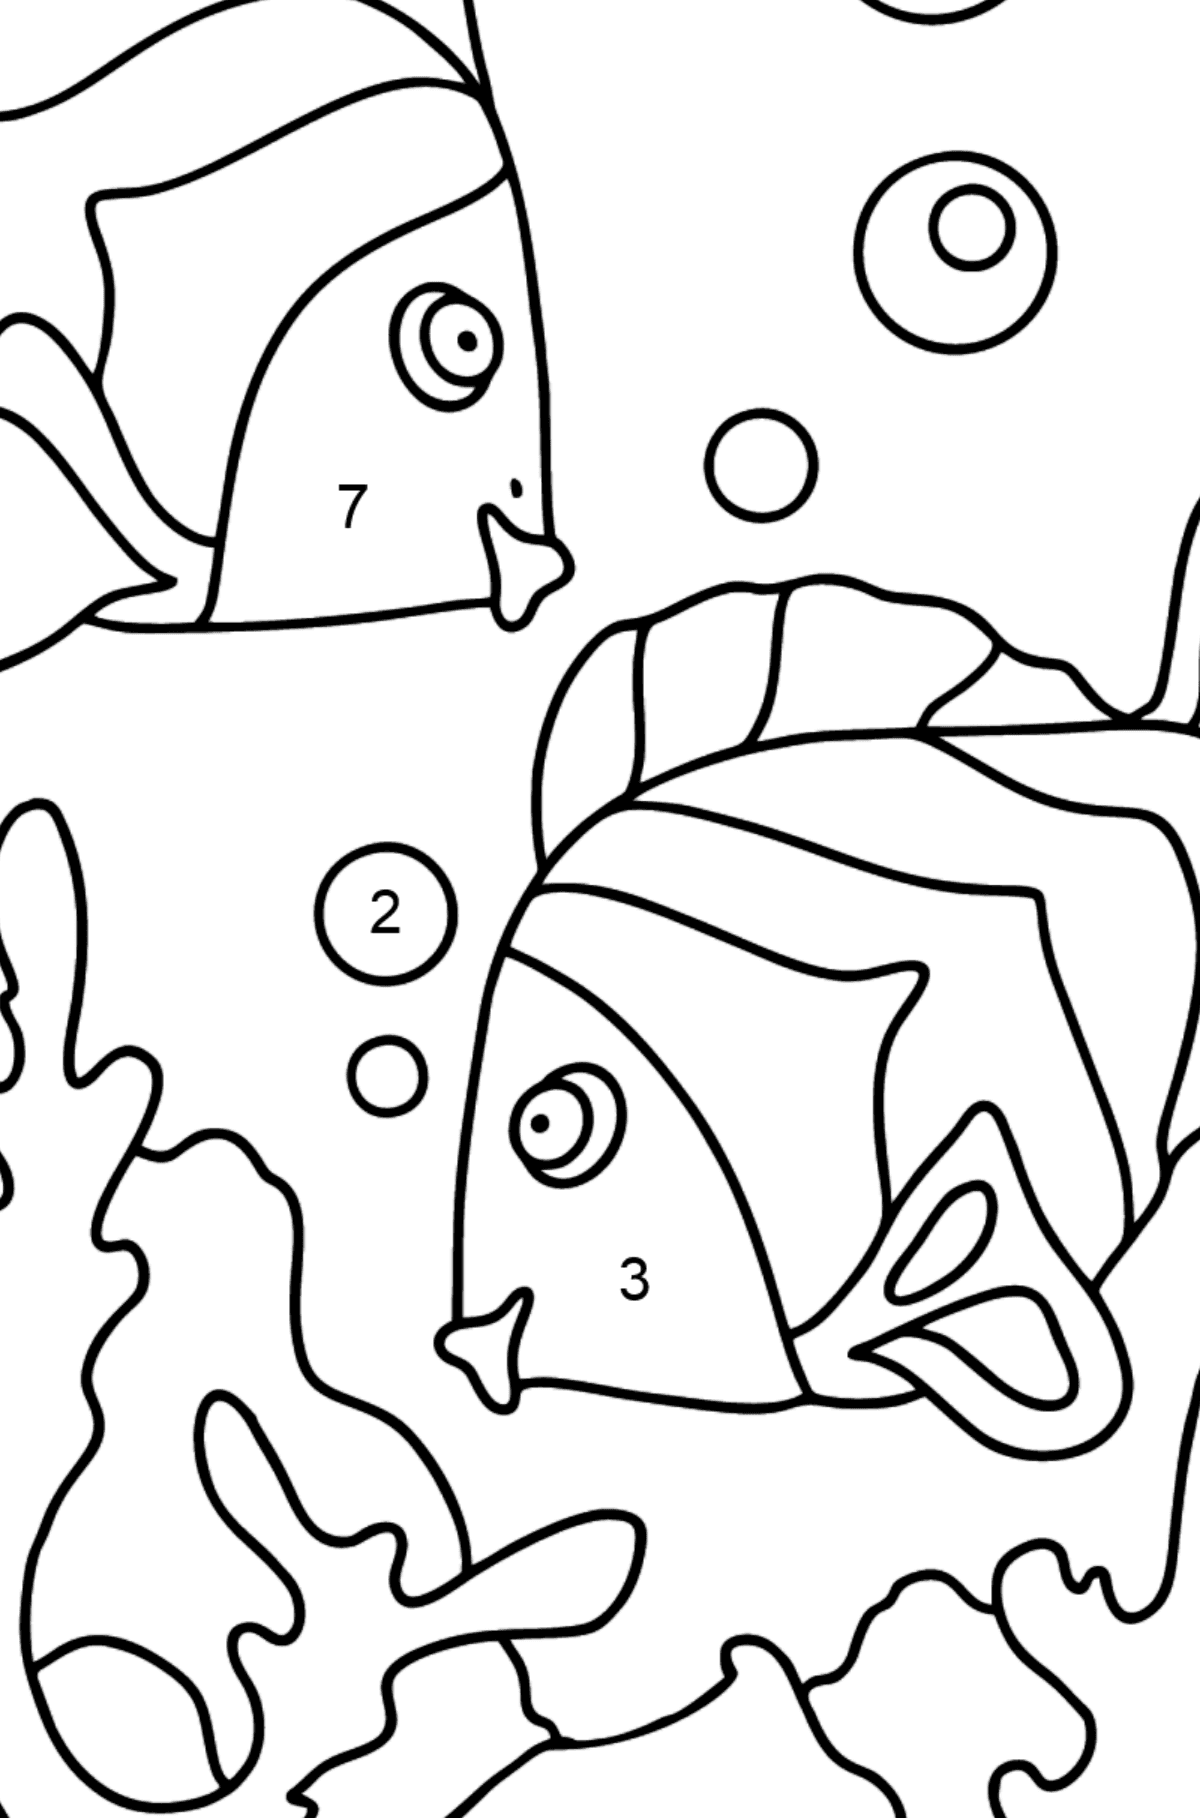 Coloring Page - Fish are Playing Happily - Coloring by Numbers for Kids